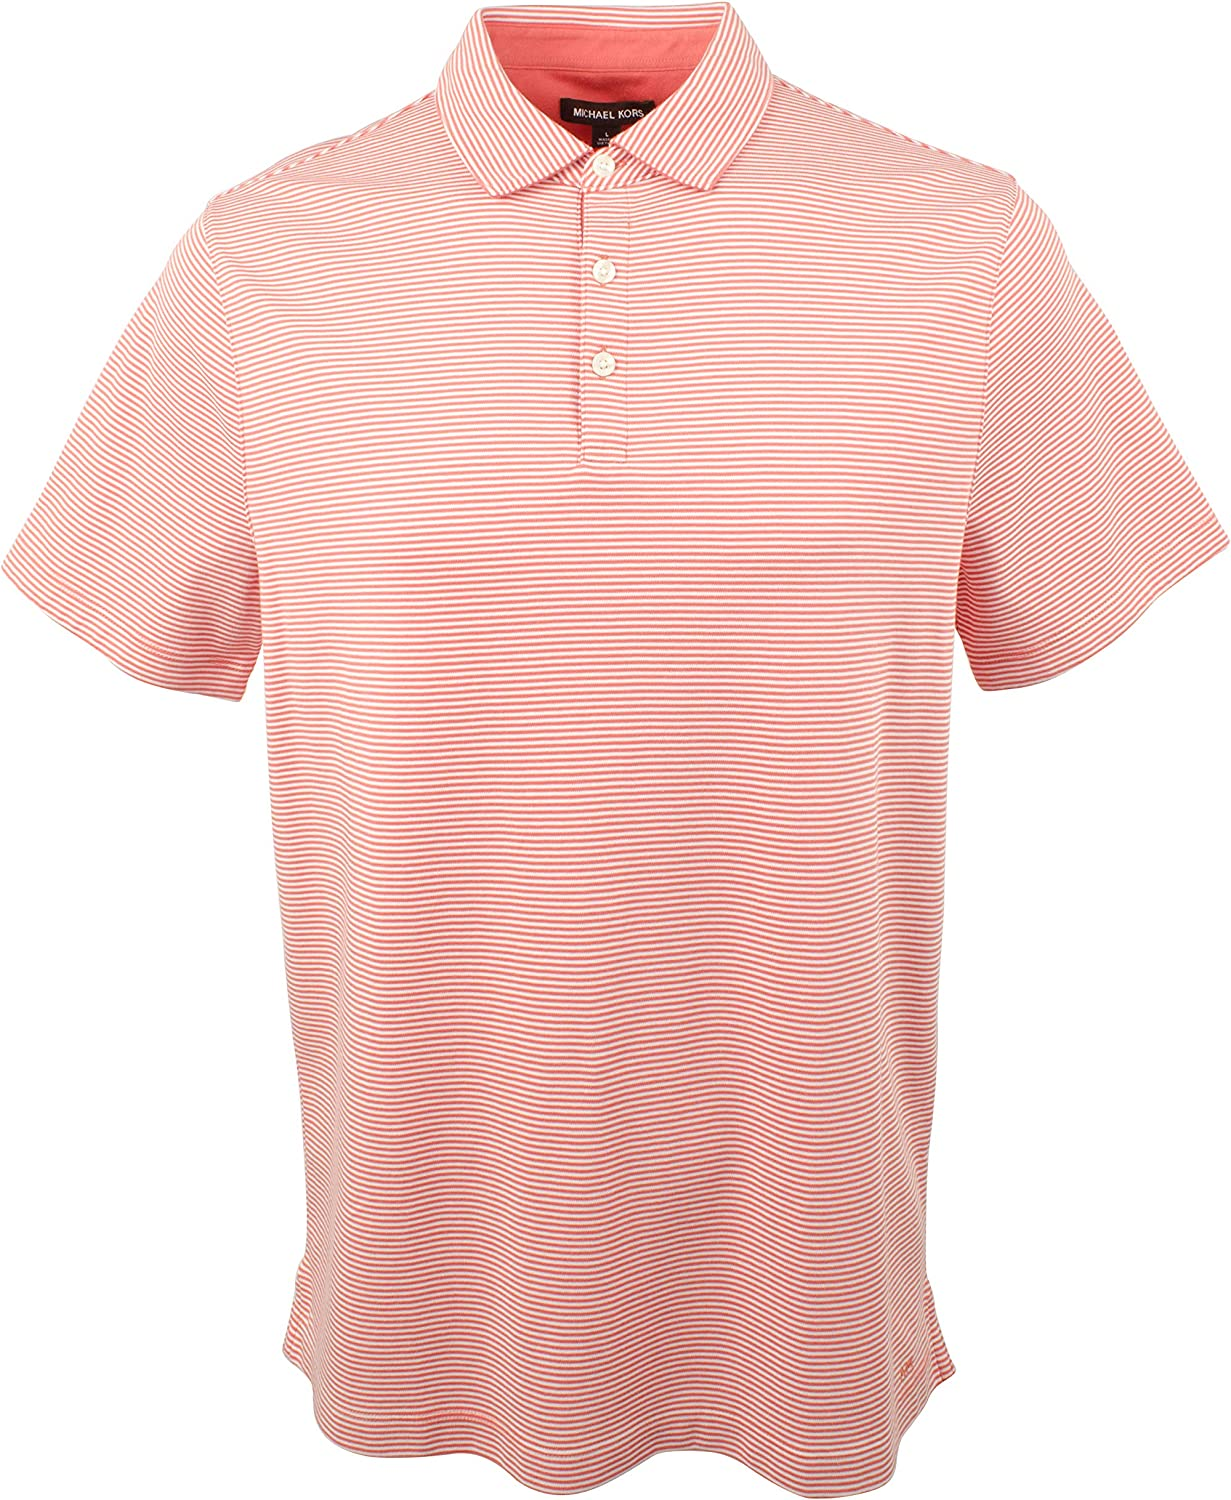 Michael Kors Mens Striped Cotton Polo Shirt-FC-M: Amazon.es: Ropa ...